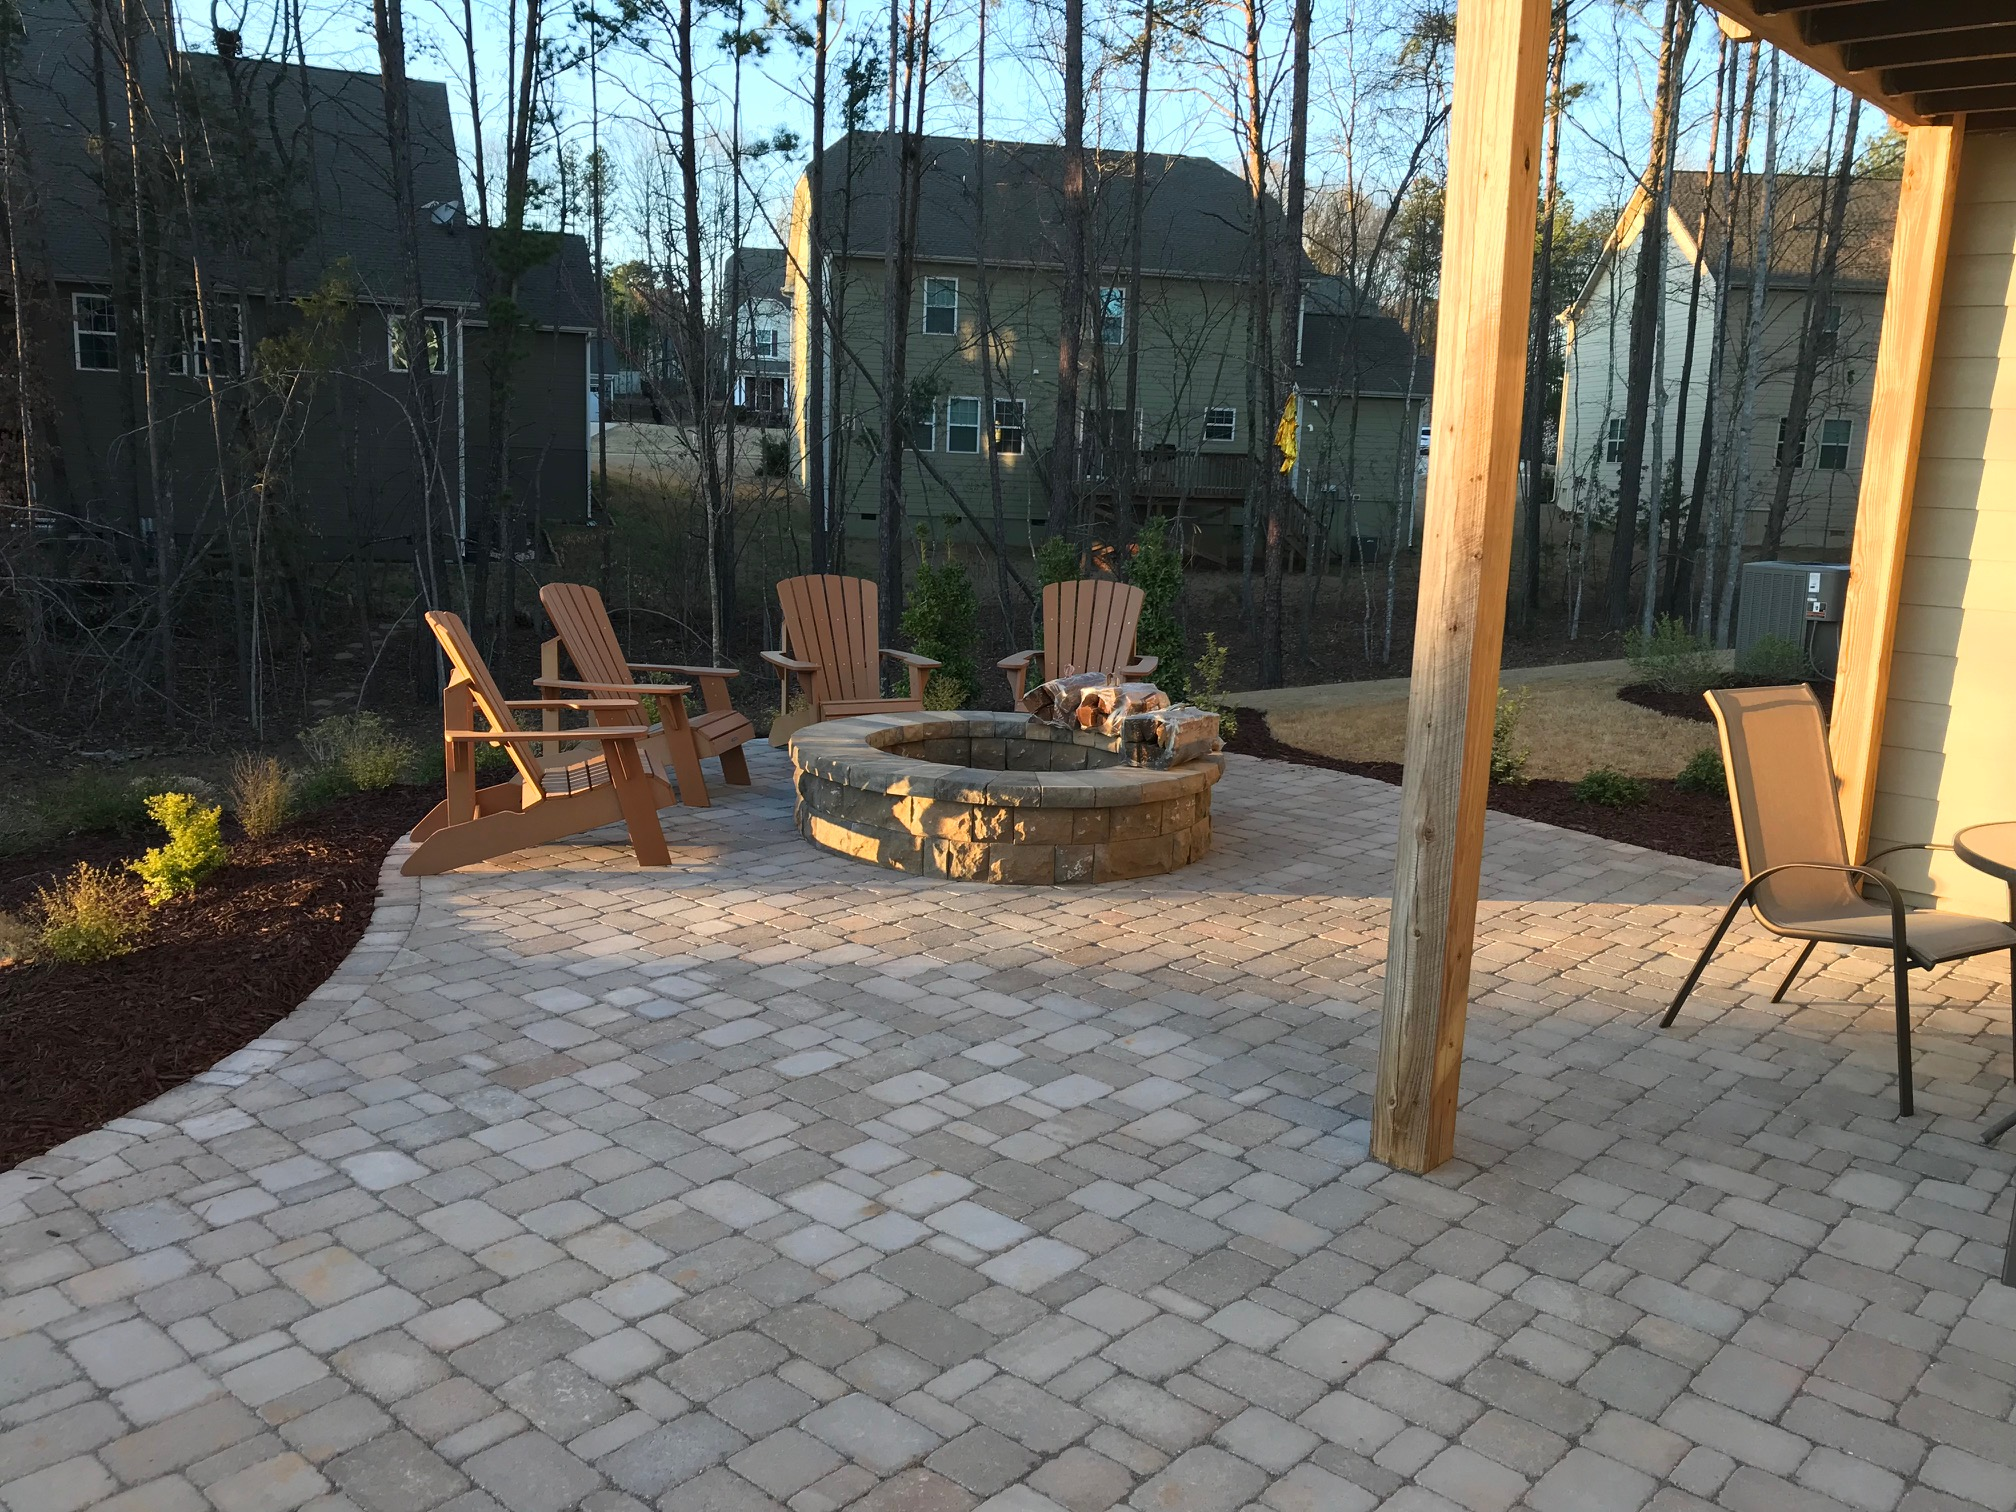 A Belgard Paver Patio, Fire Pit and Landscaping - Mr ... on Outdoor Pavers Patio id=63032